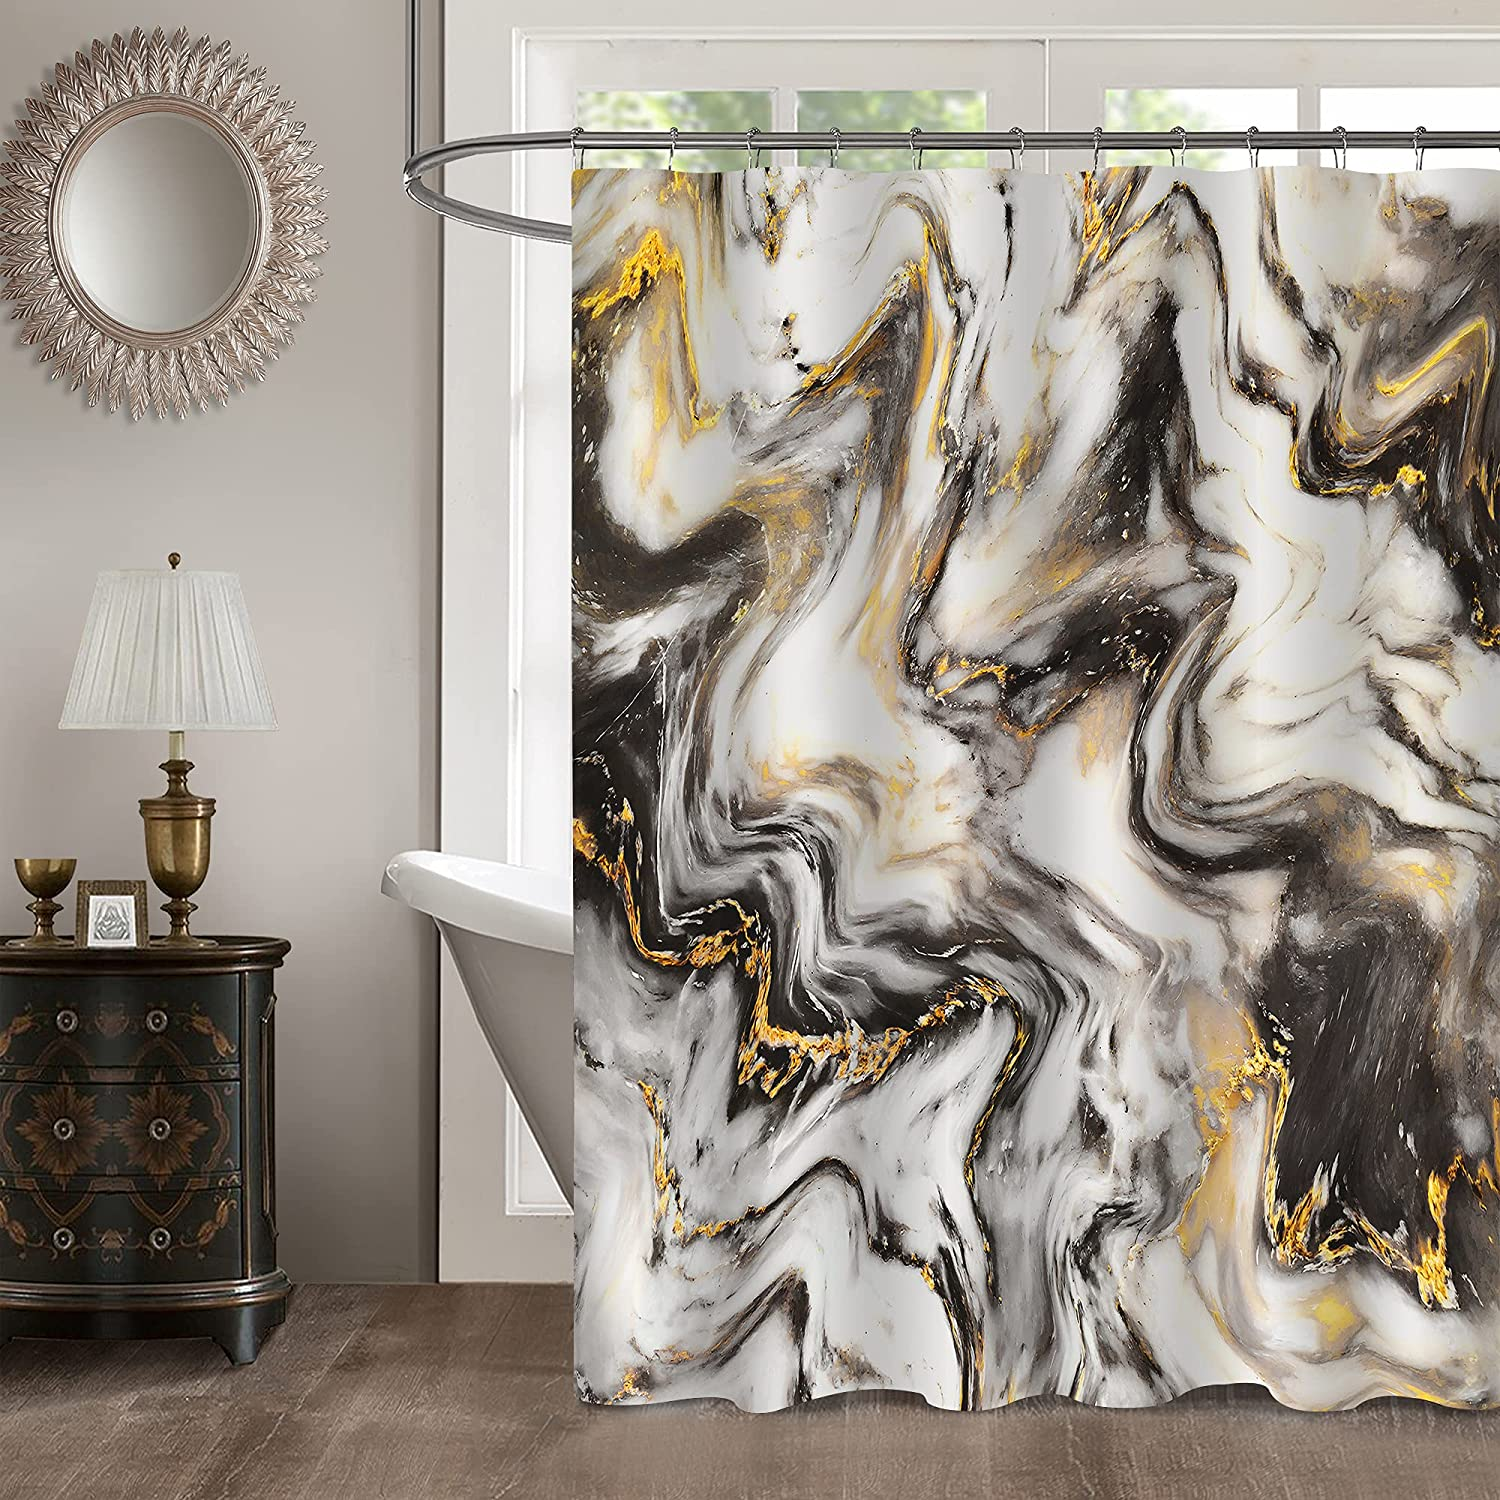 MitoVilla Black Gold Marble Shower Curtain Set with Hooks, Abstract Black Gold White Striped Marble Bathroom Decor for Men and Women, Modern Waterproof Fabric Art Decor Shower Curtain, 72